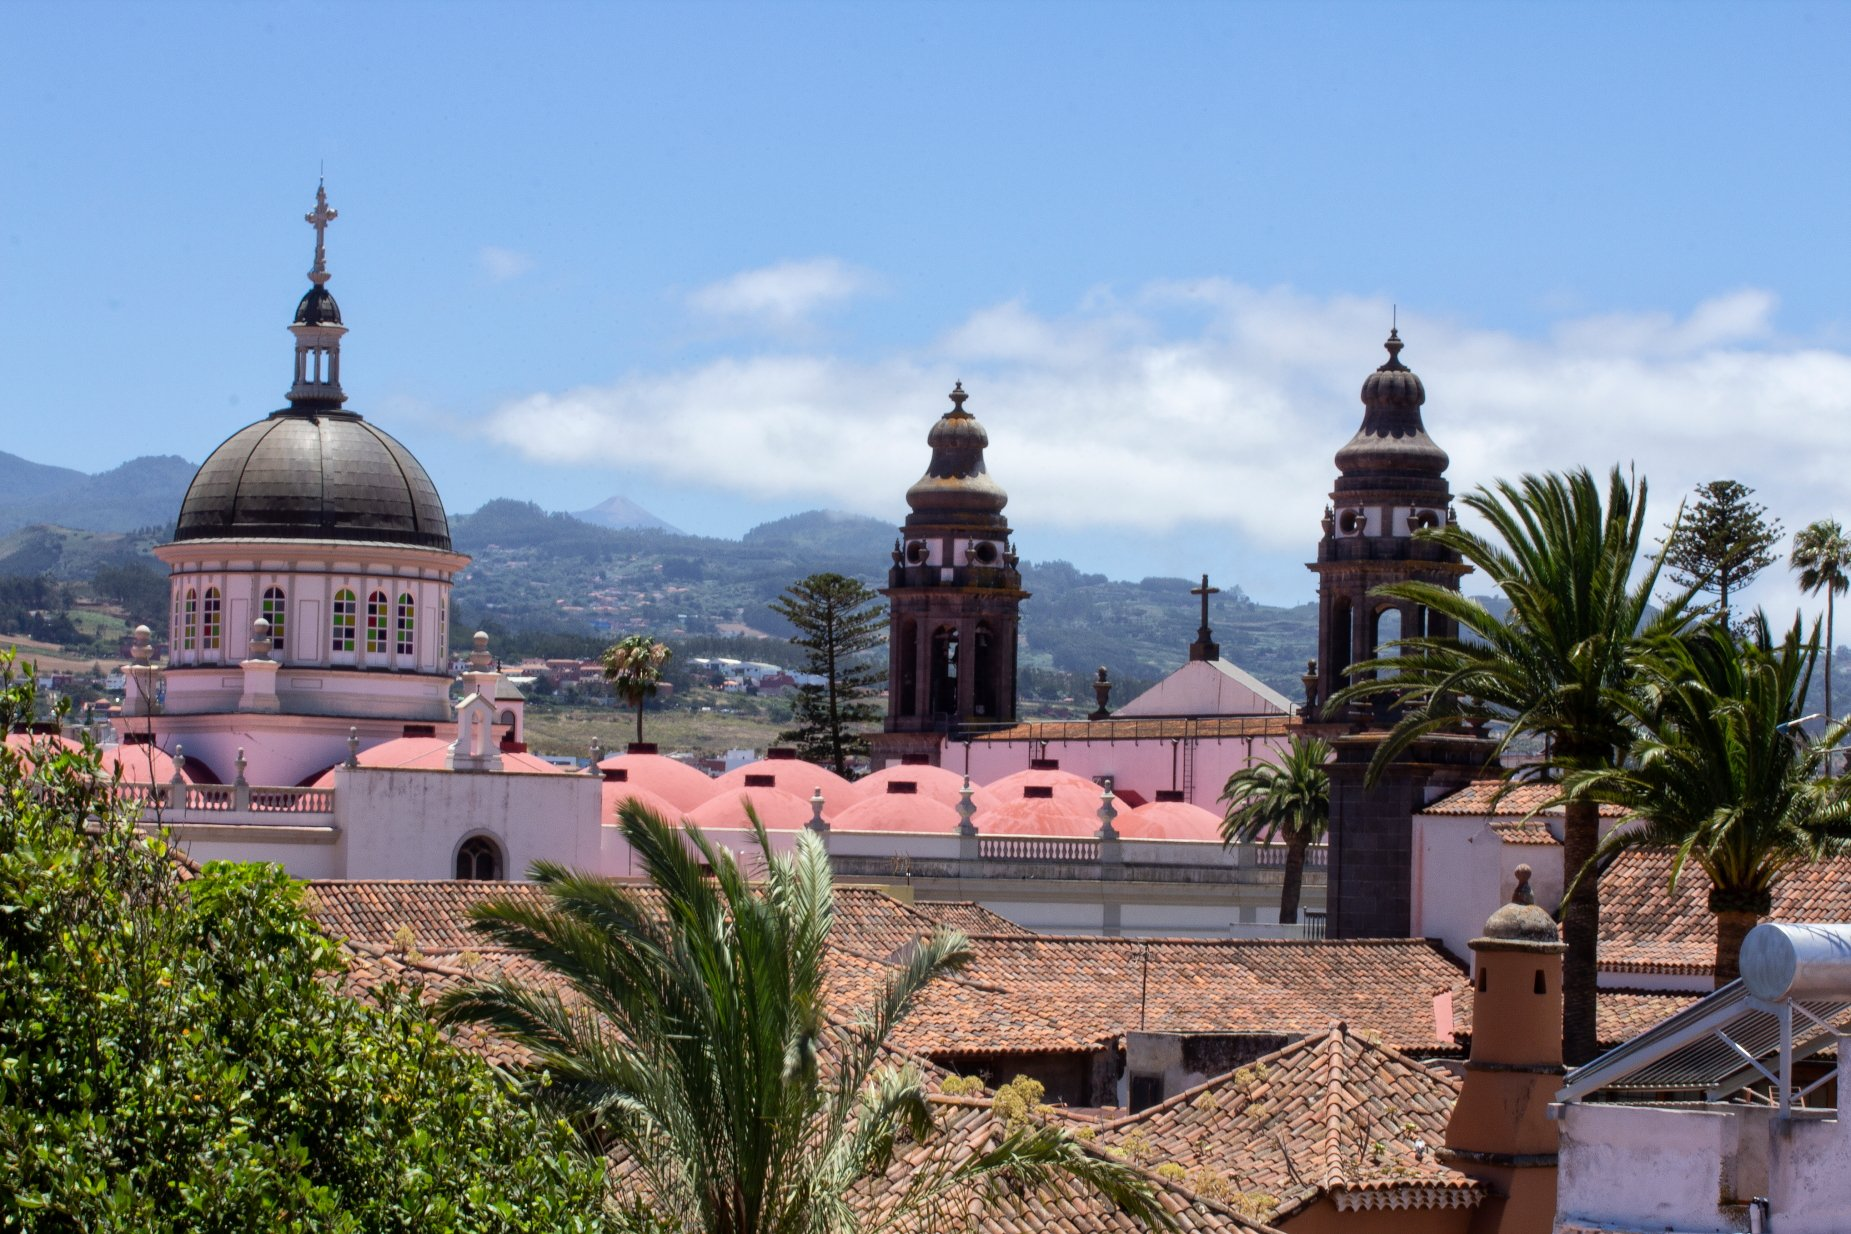 UNESCO World Heritage Site La Laguna